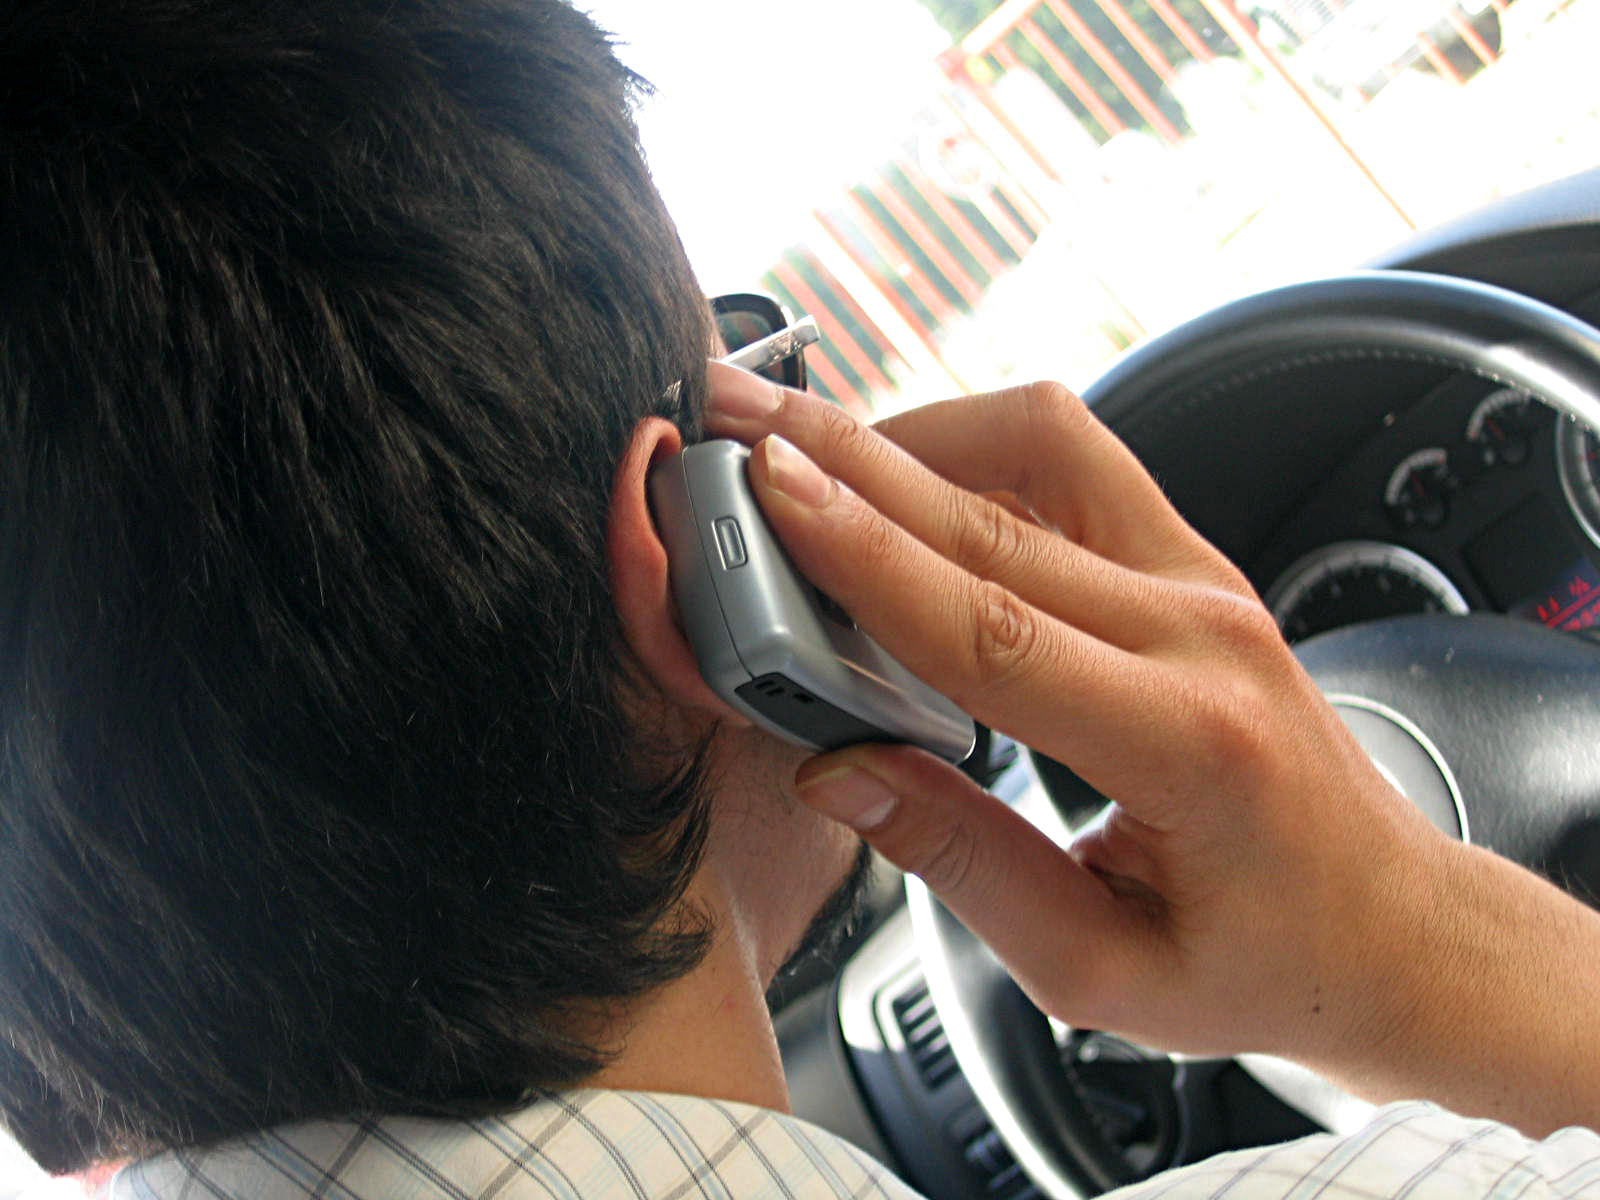 UK study finds no link between phone use and car crash rates